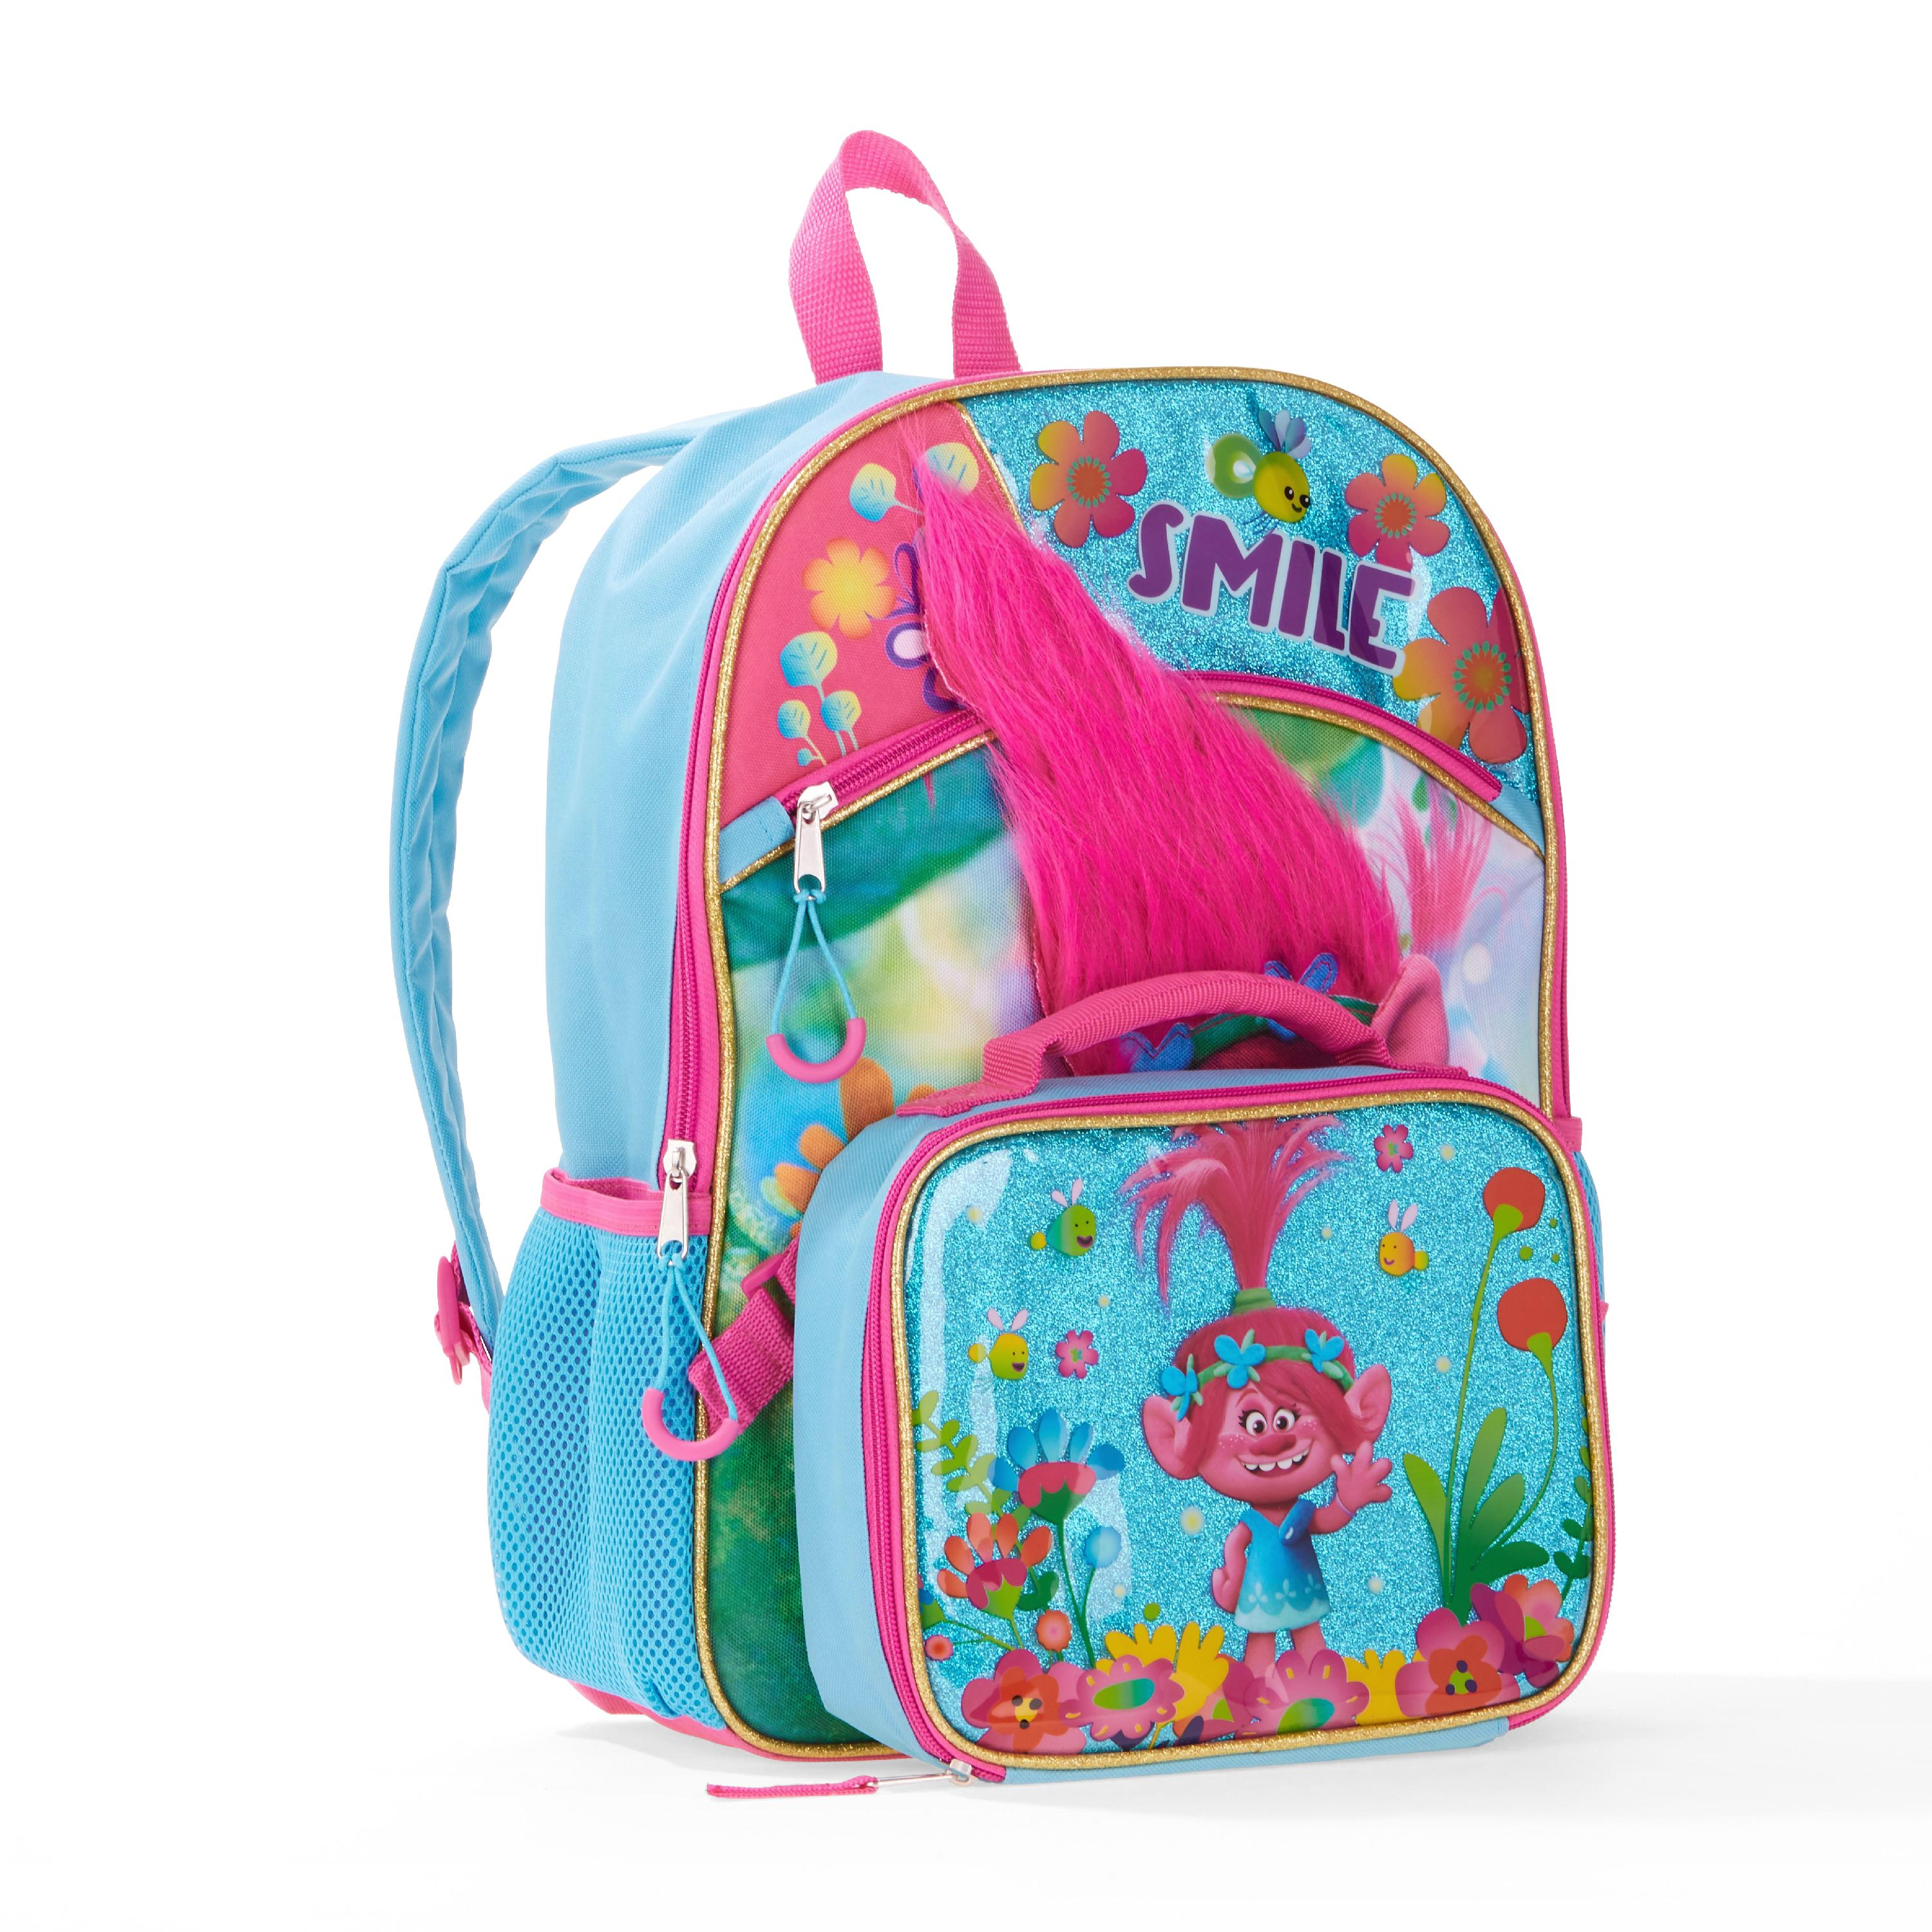 Trolls Backpack w/ Lunch Bag